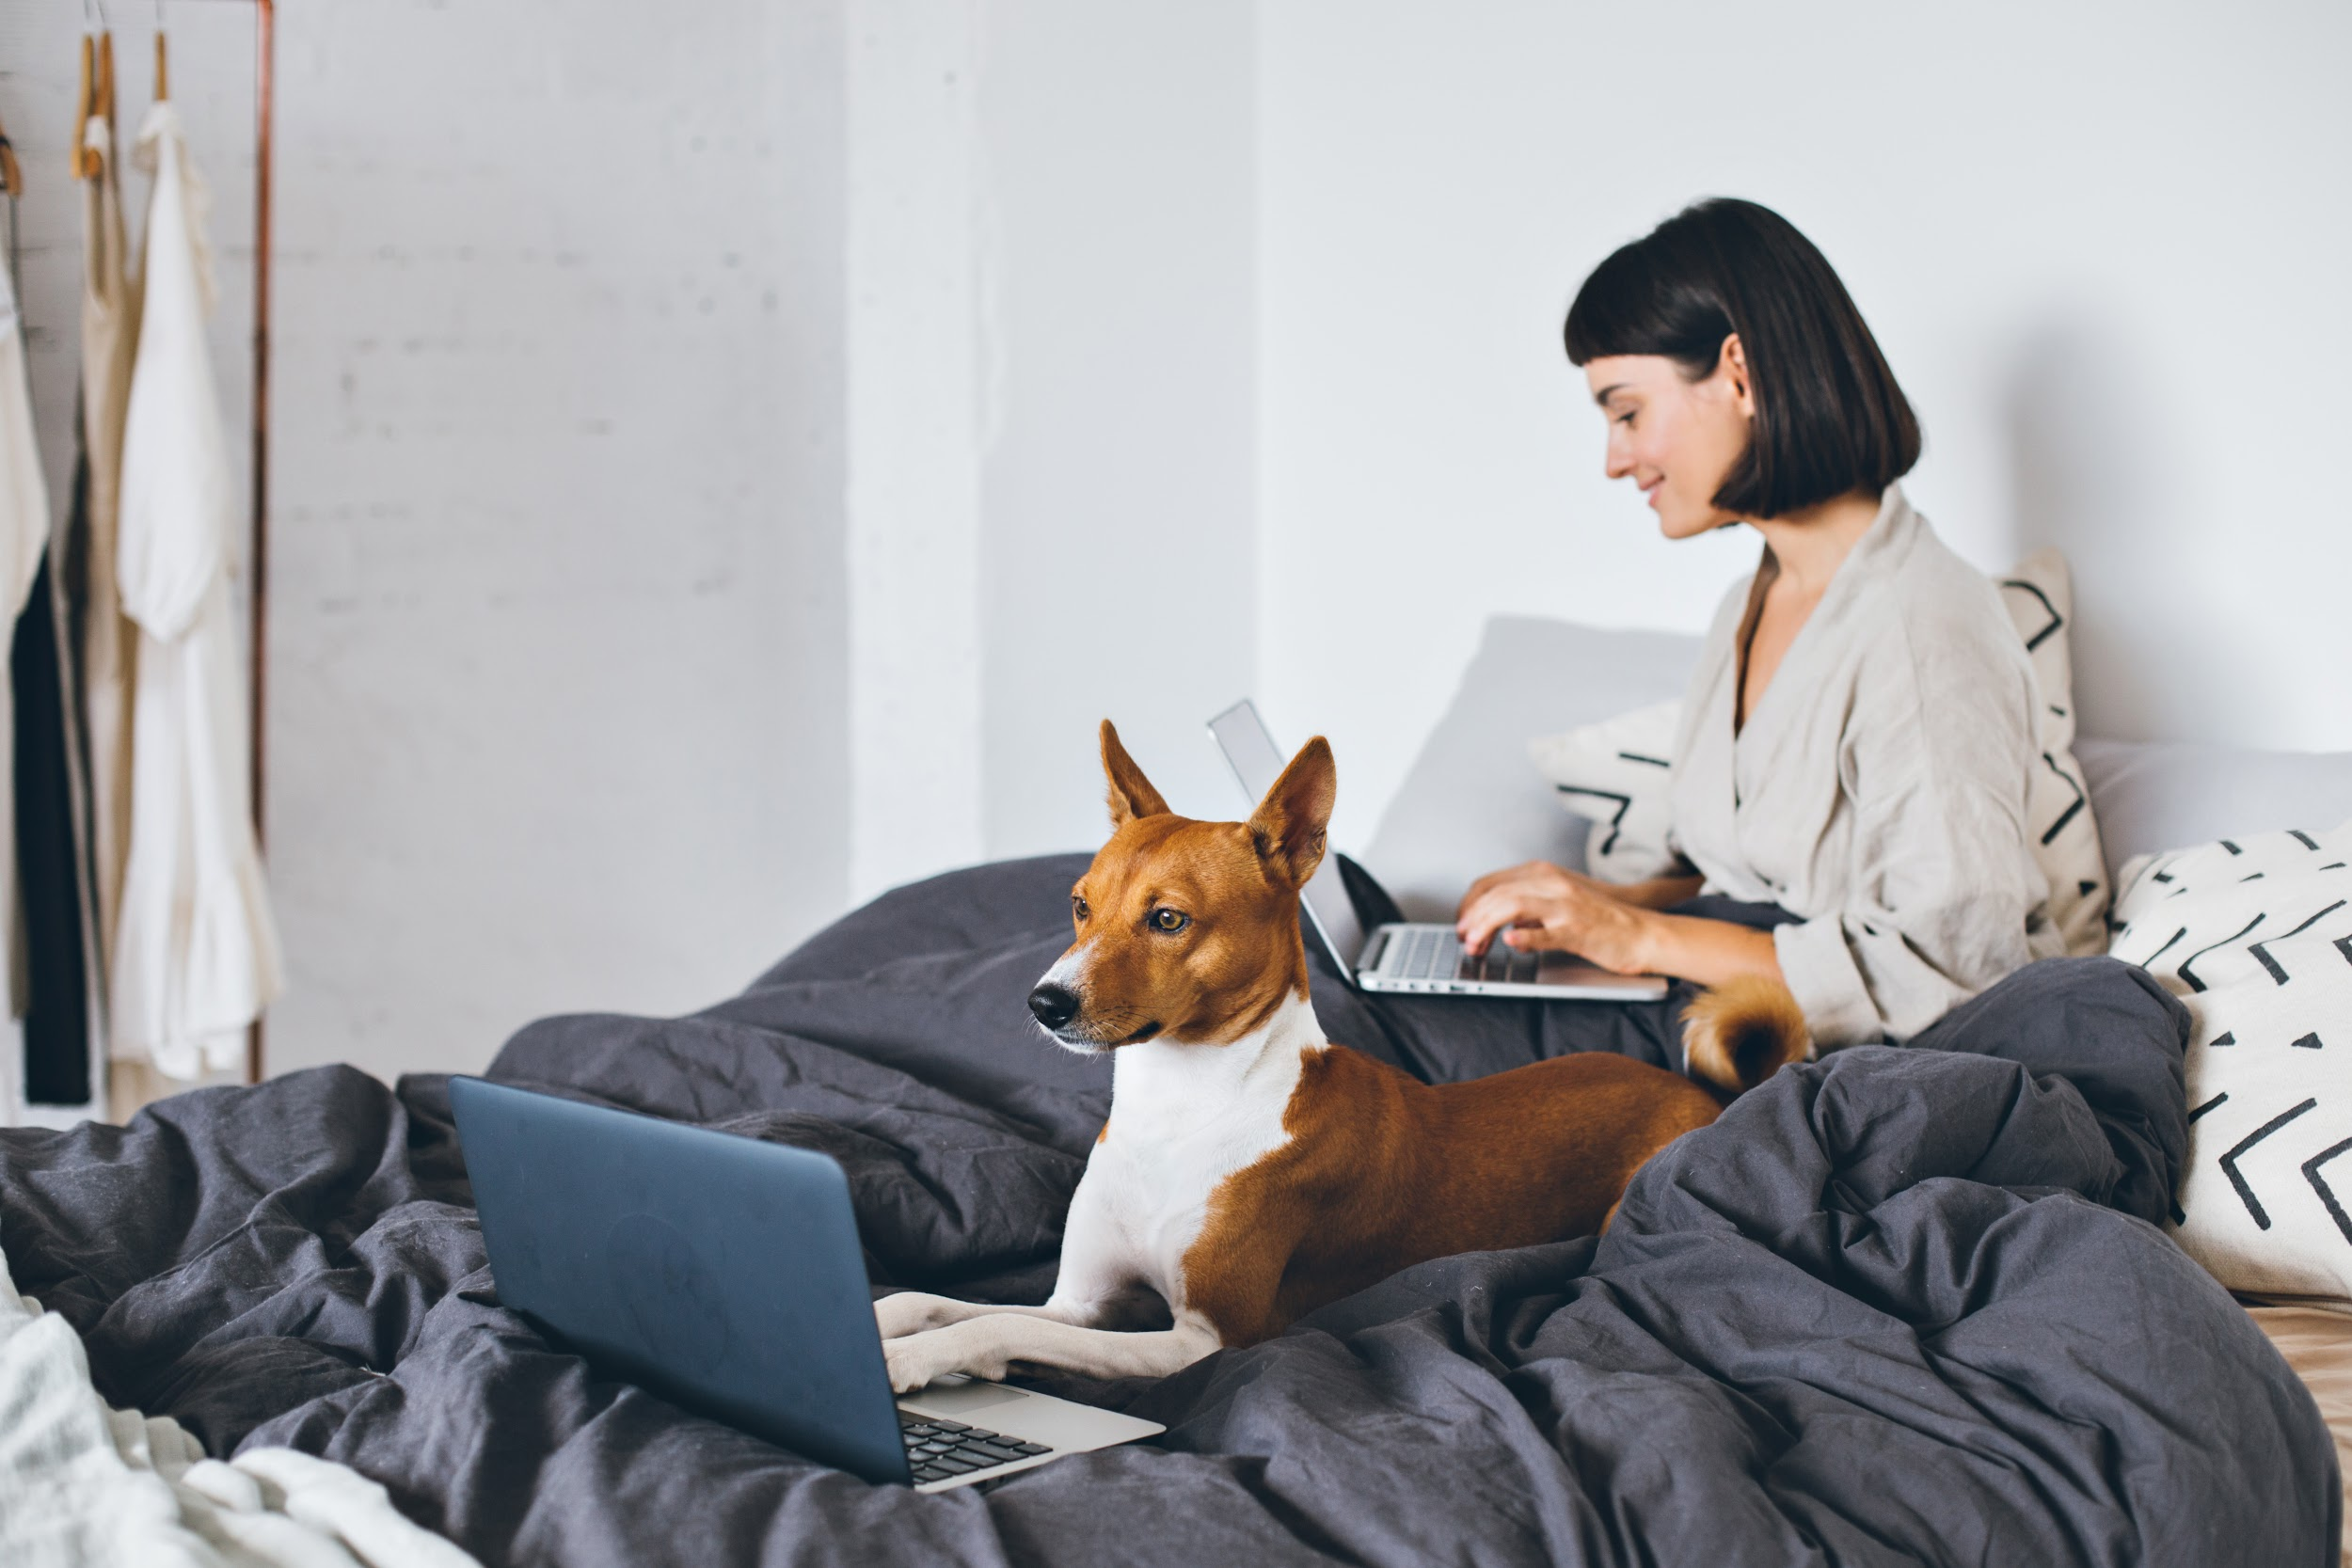 young woman and a dog working on their laptops on a bed